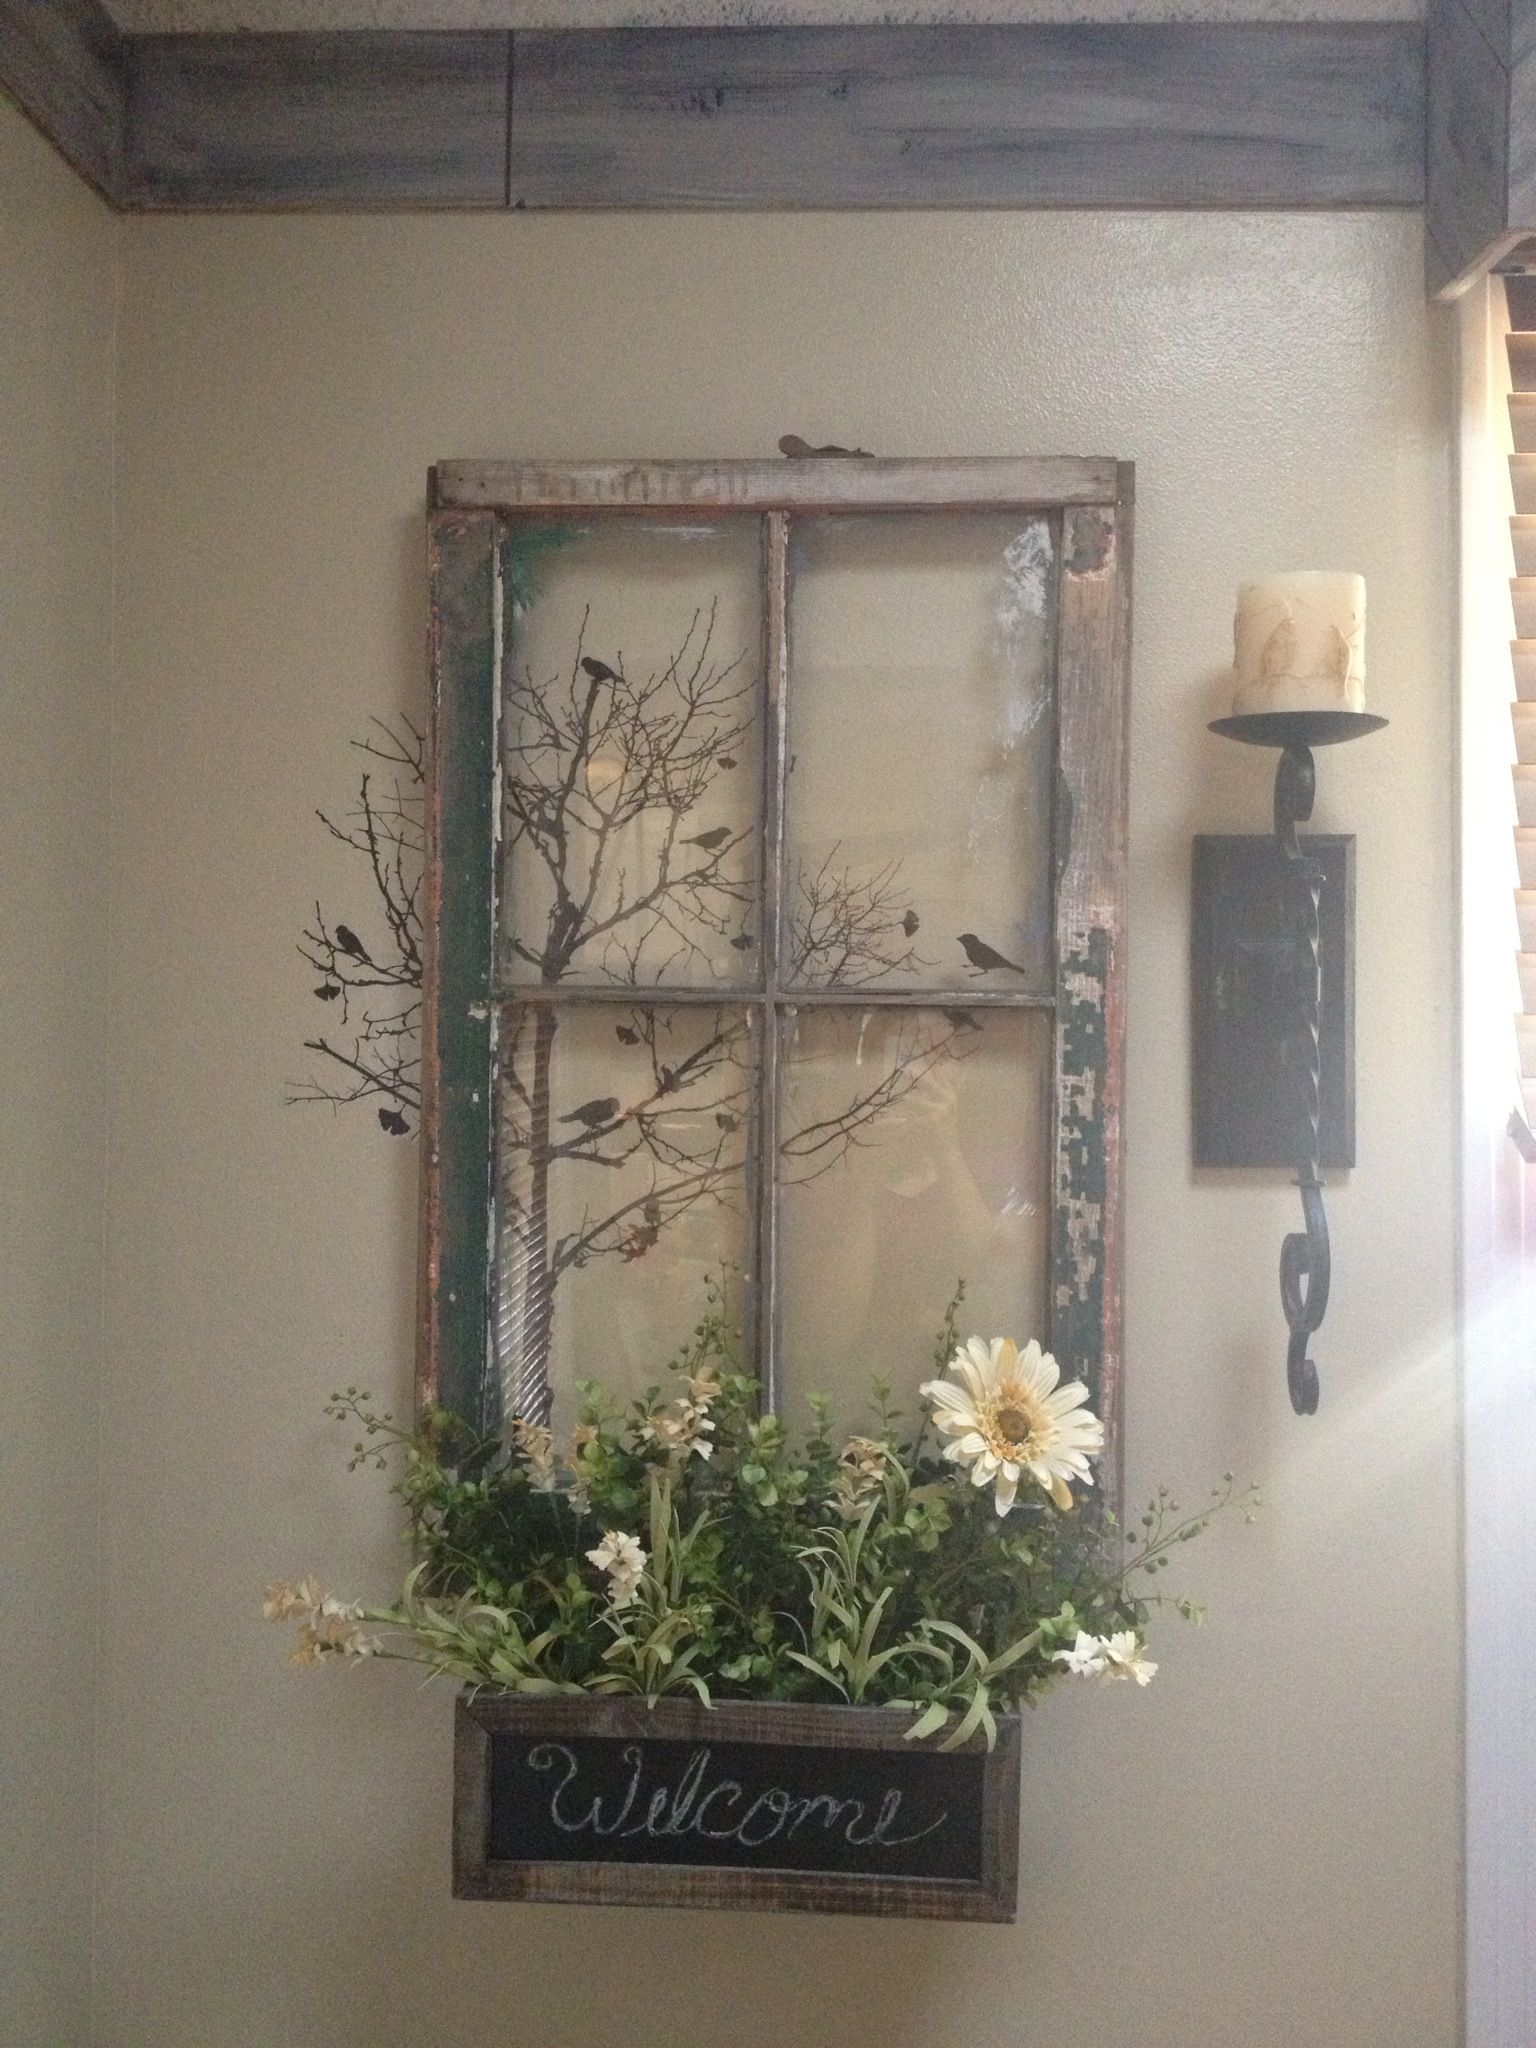 My vision of an old window repurposed except with a mirror instead ...